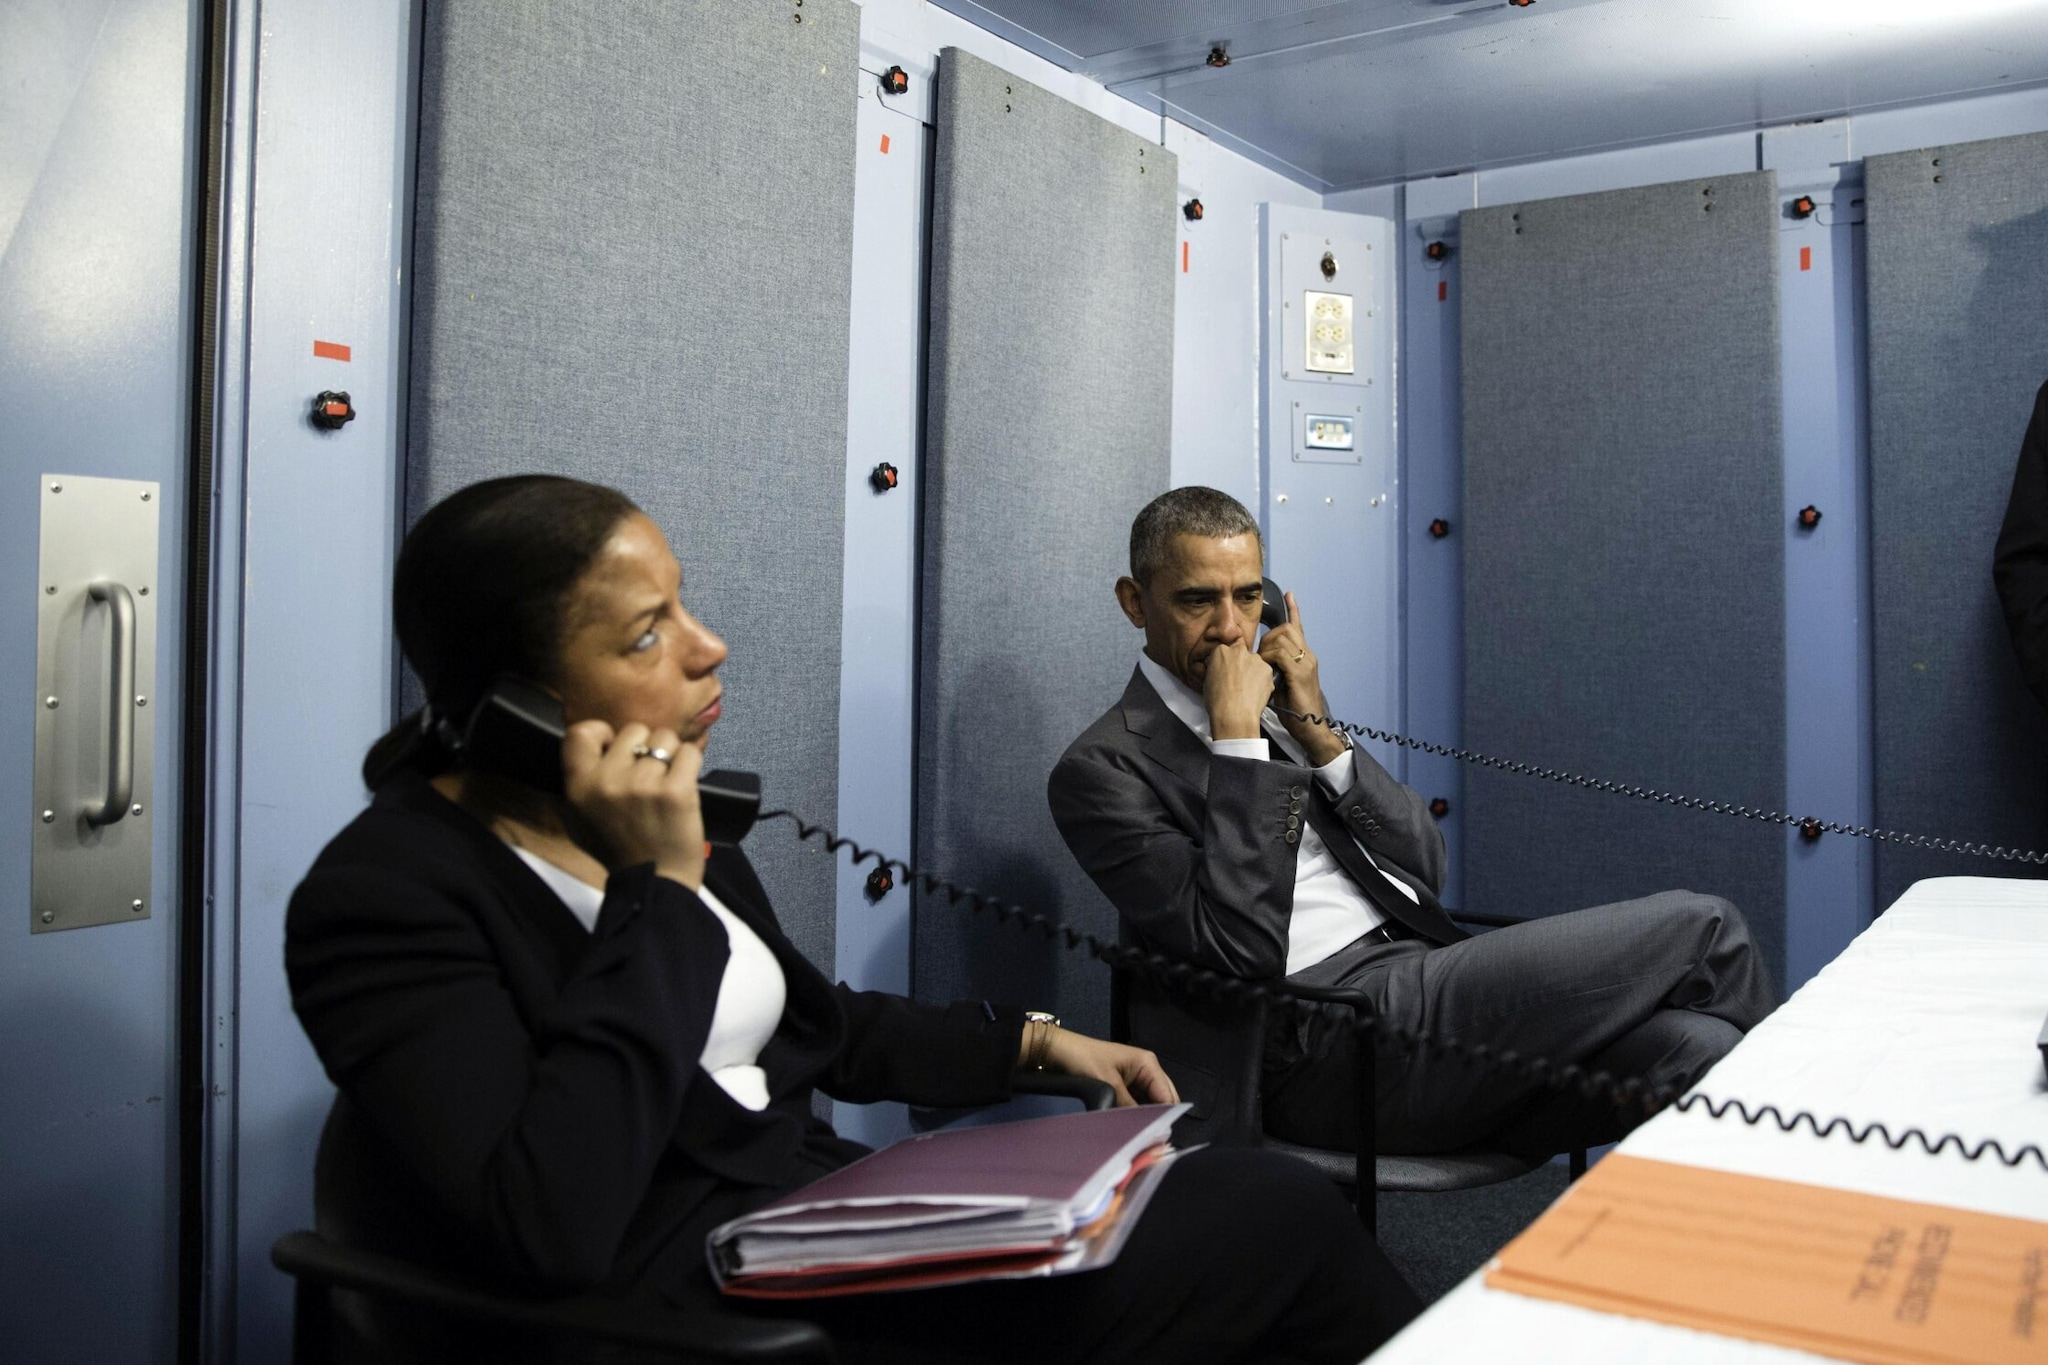 President Barack Obama and National Security Advisor Susan E. Rice talk on the phone with Homeland Security Advisor Lisa Monaco to receive an update on a terrorist attack in Brussels, Belgium. The President made the call from the residence of the U.S. Chief of Mission in Havana, Cuba, March 22, 2016. (Official White House Photo by Pete Souza)